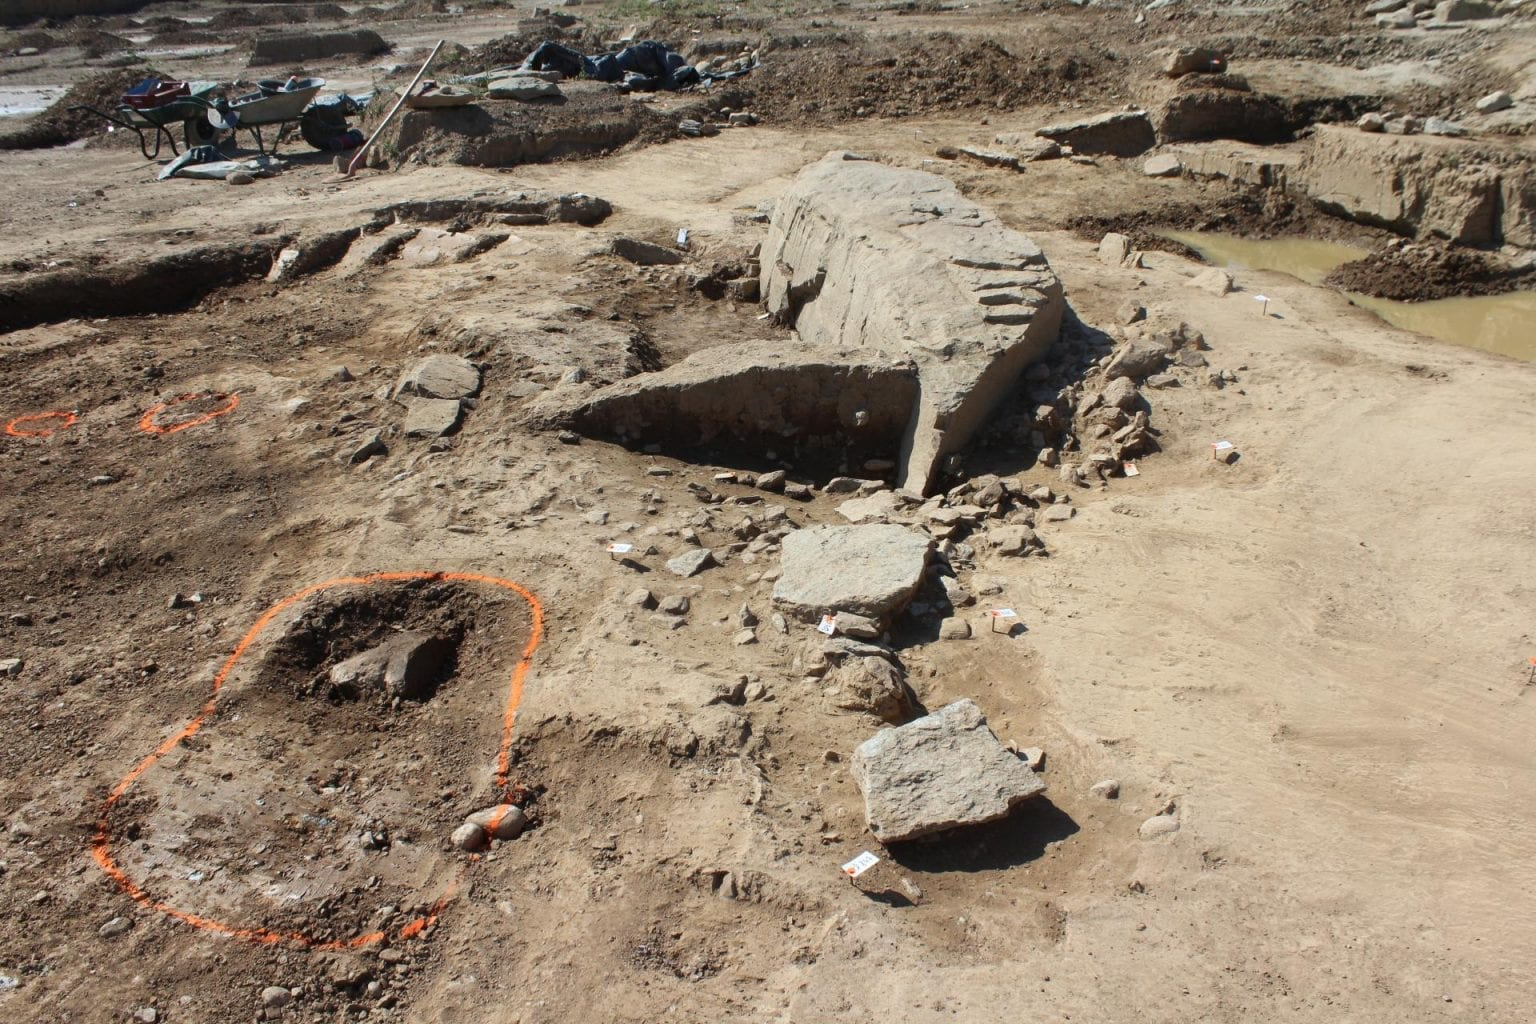 South view of the megalithic sector during excavation. Credit: Florent Notier, Inrap